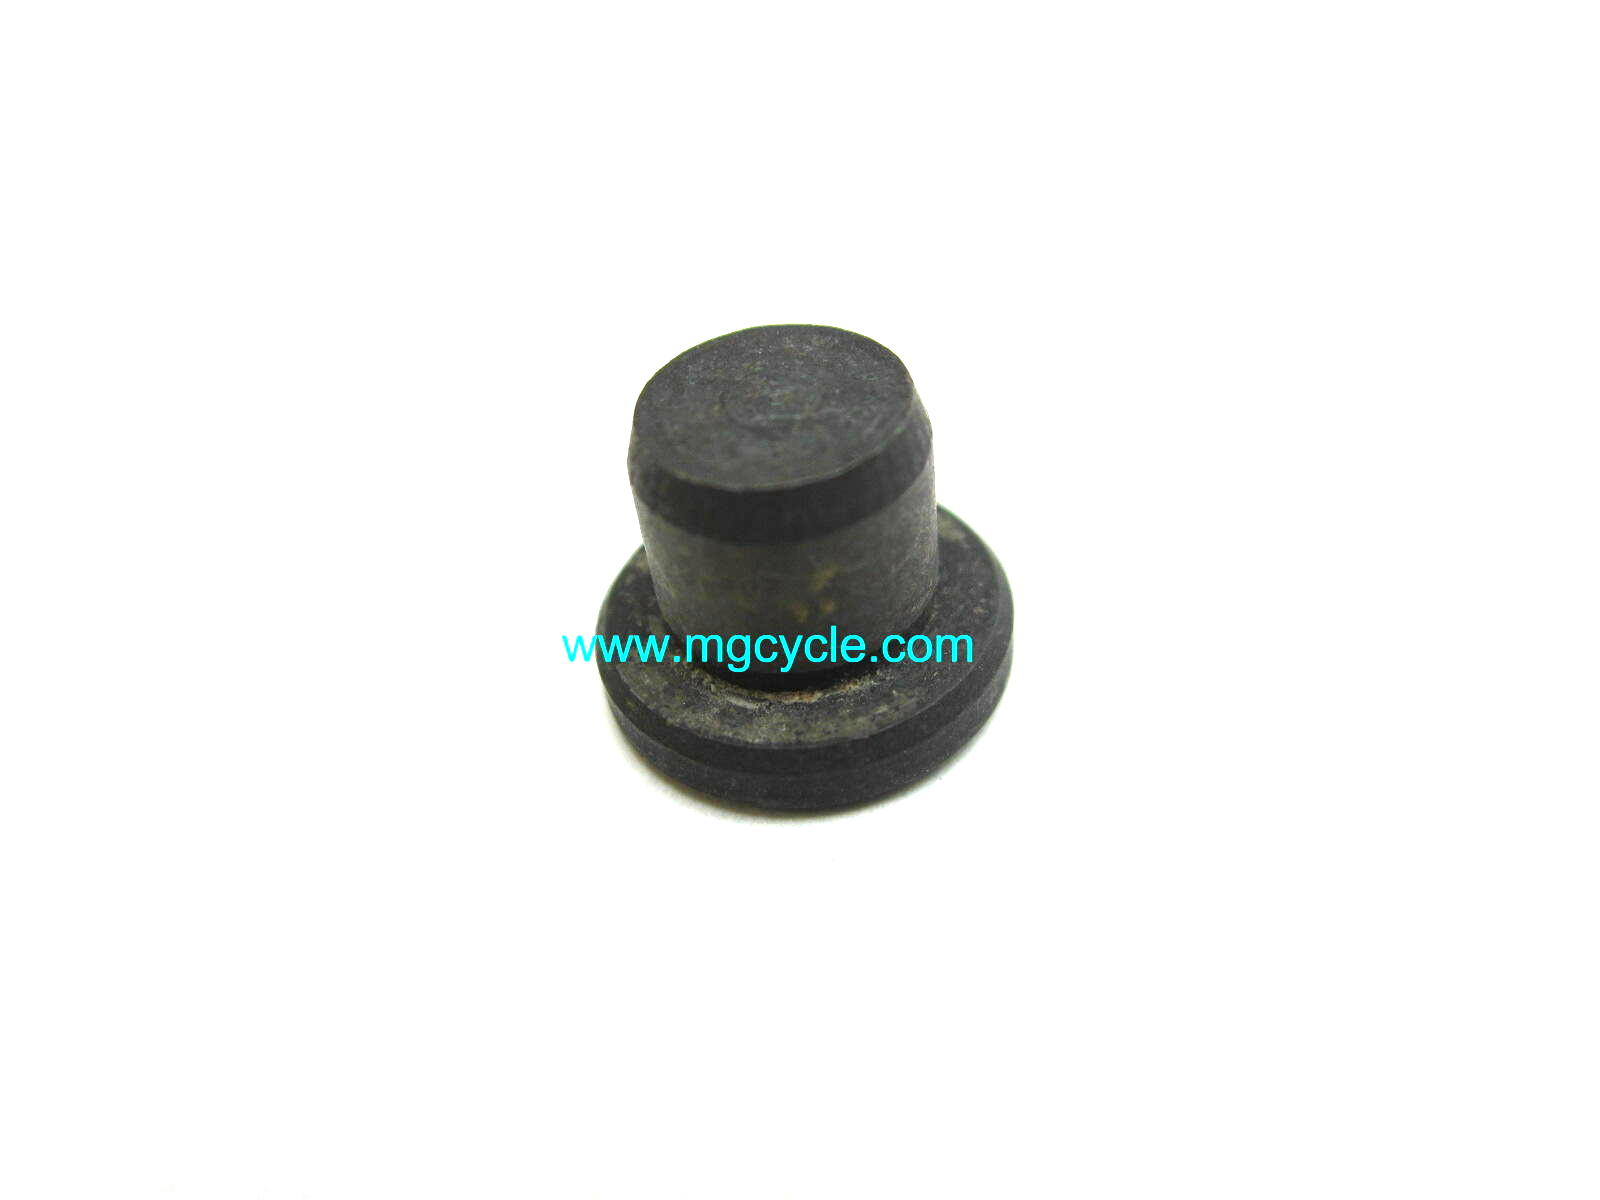 Ducati PASO clutch button 067016730 NLA item from Ducati